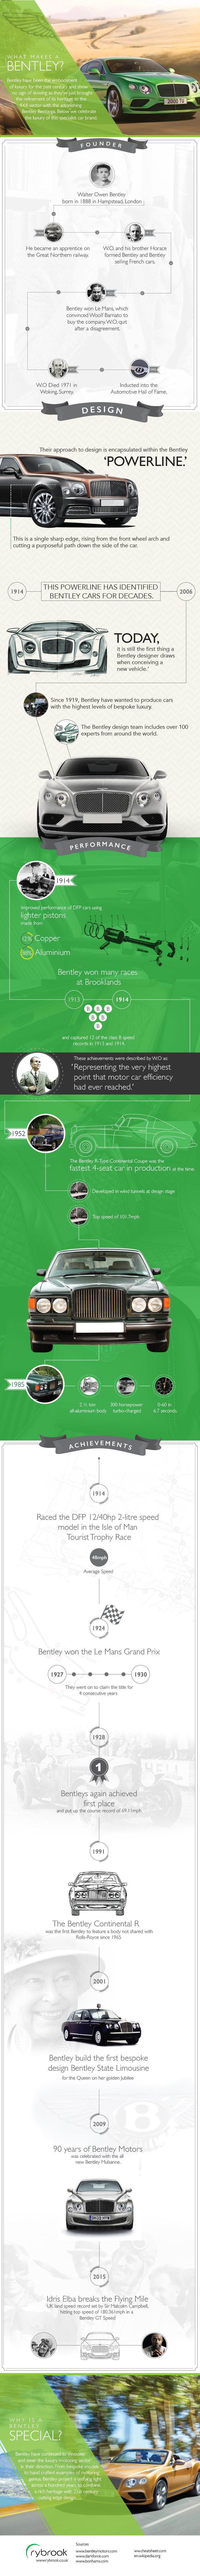 What Makes A Bentley? Infographic